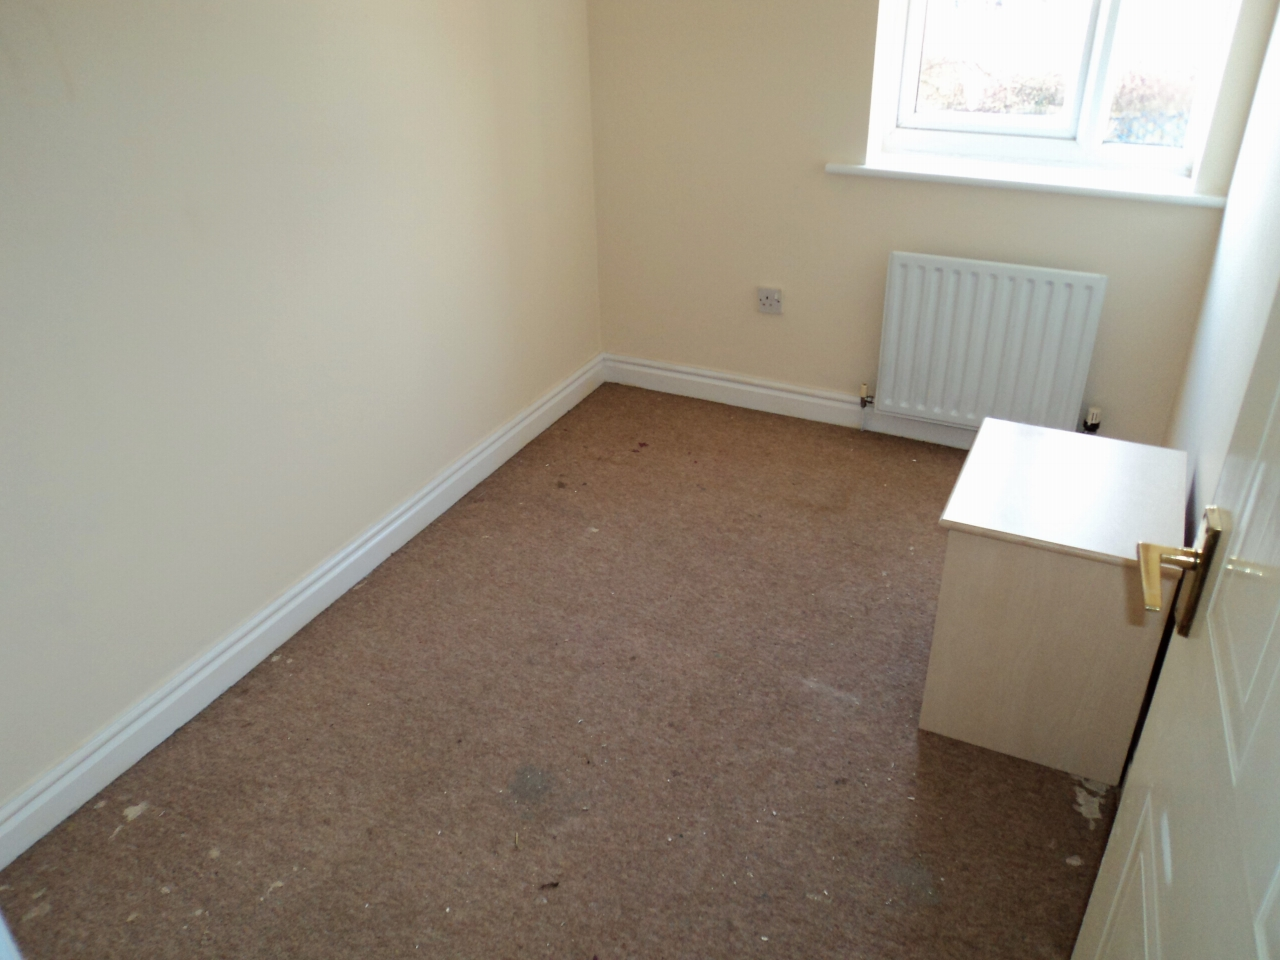 3 Bedroom House For Sale - Image 6